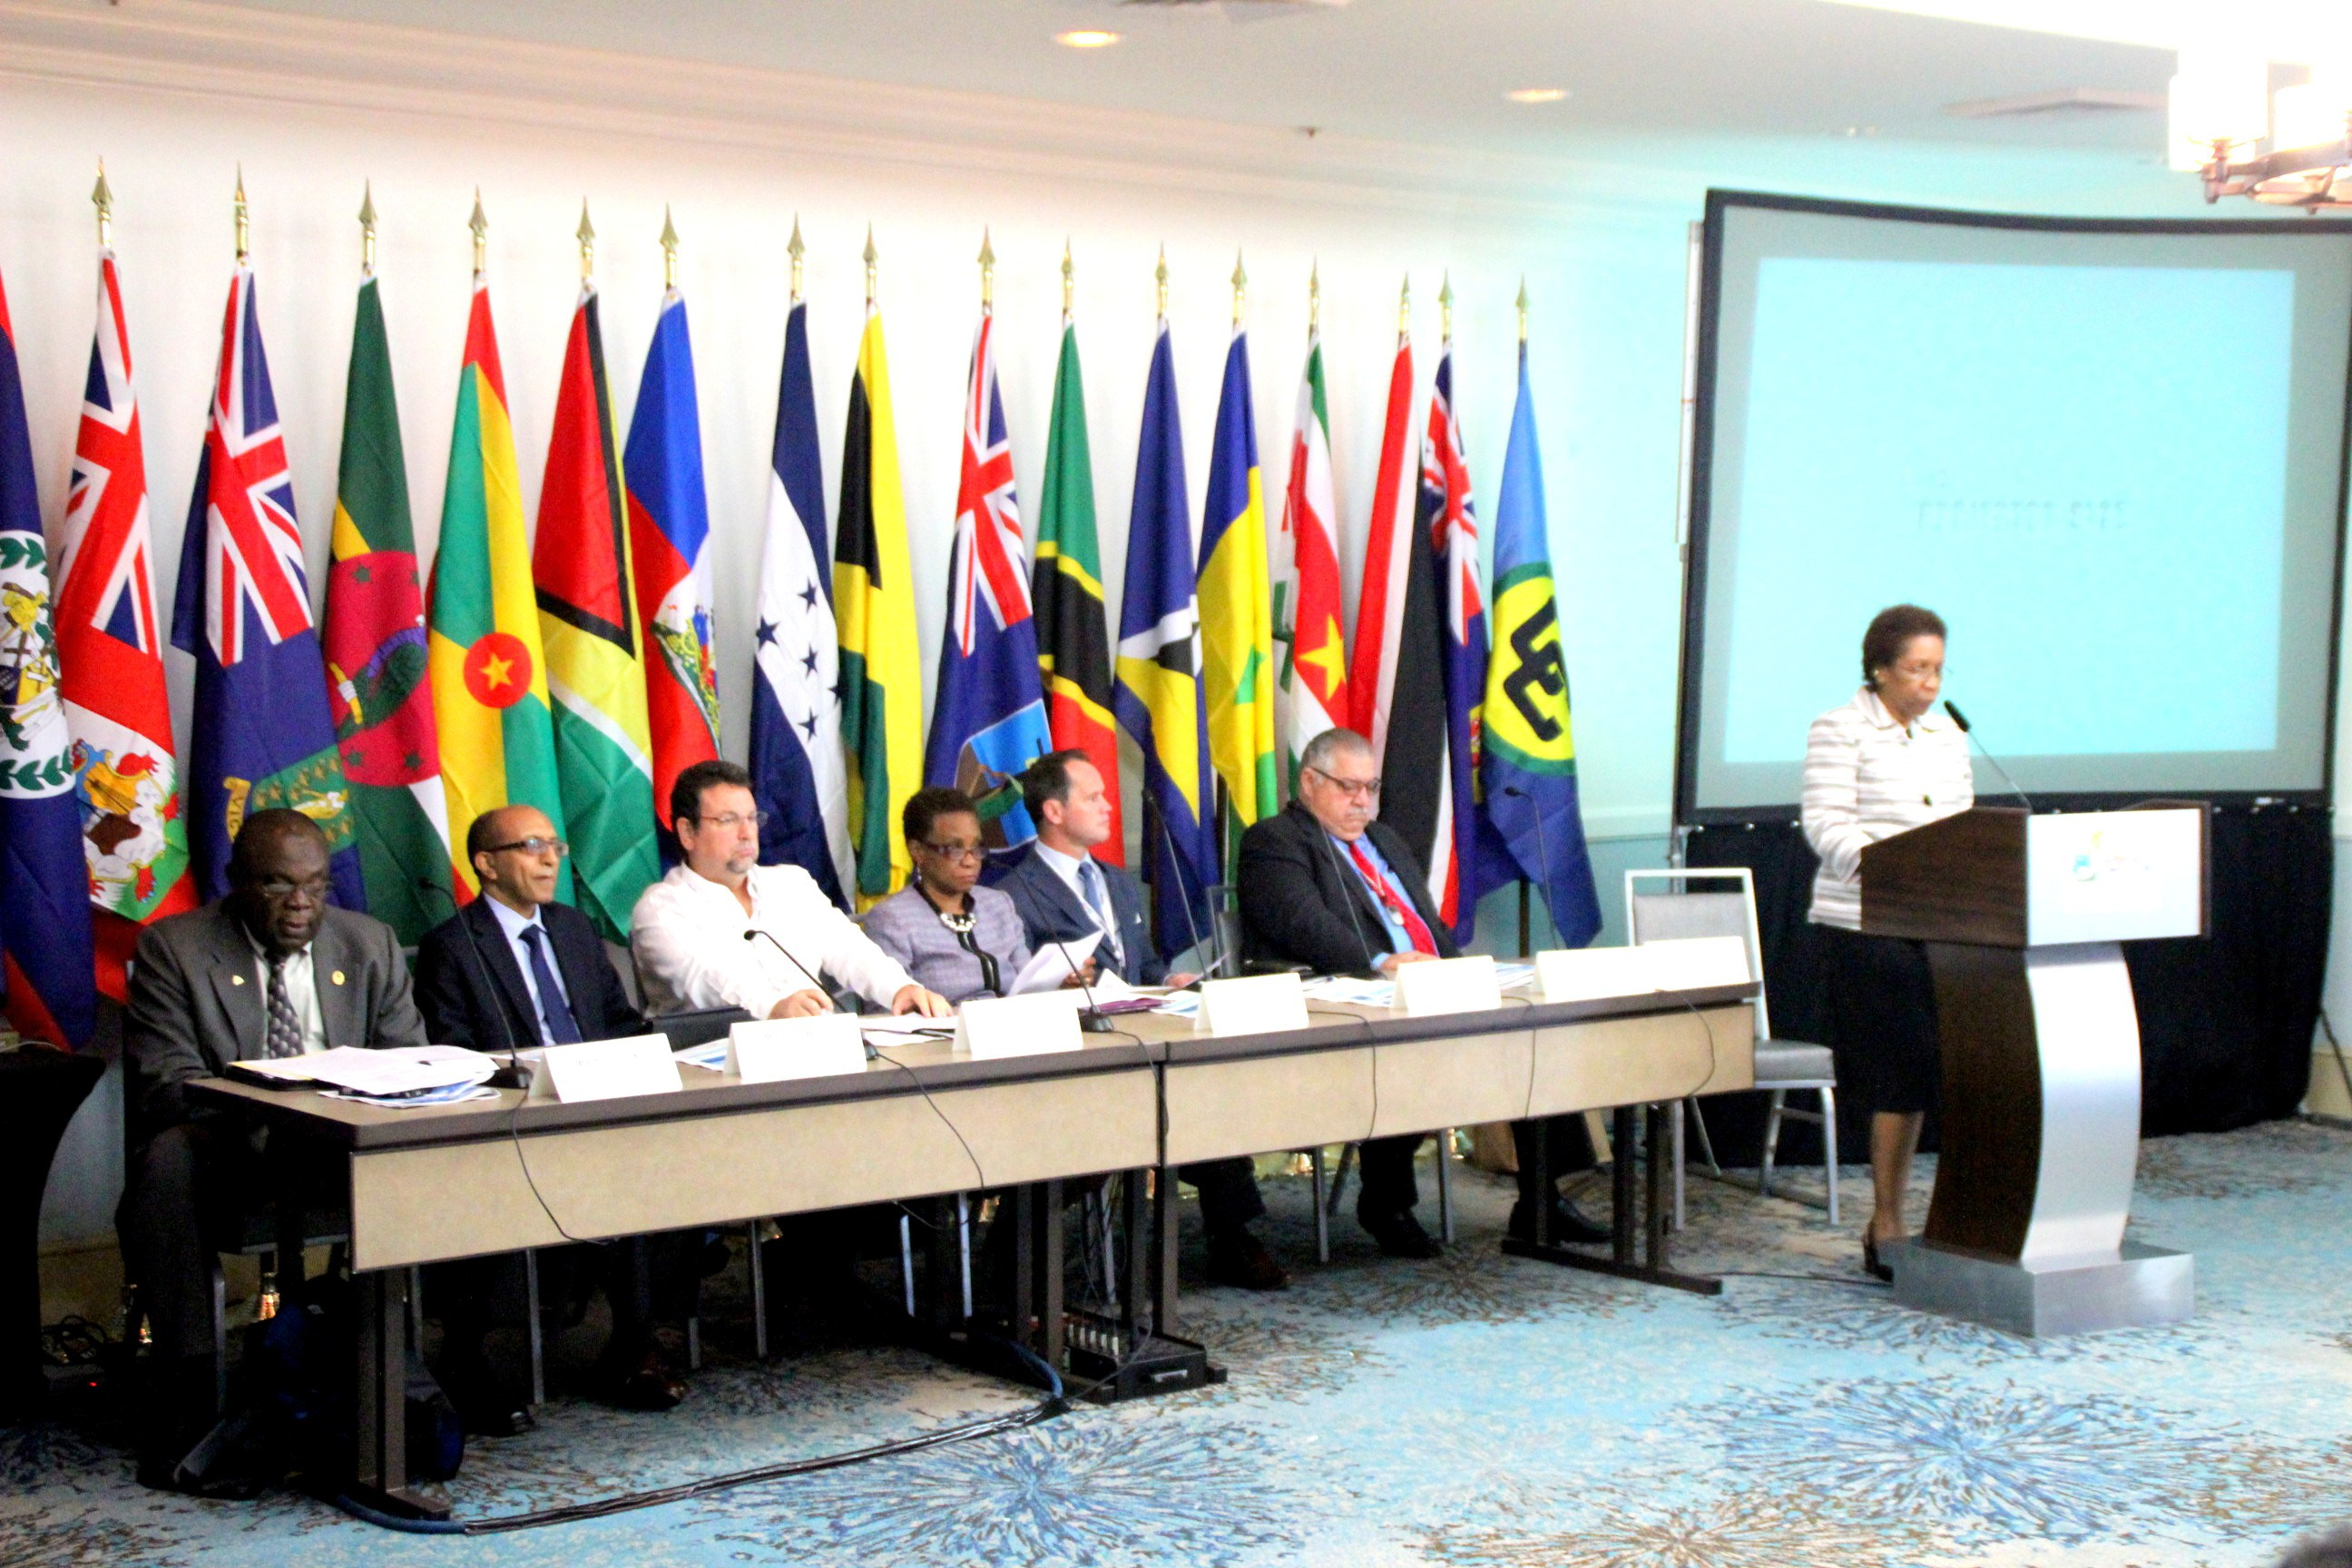 Ms. Desiree Field-Ridley, of the CARICOM Secretariat chairs the opening plenary of the CWA. (Photos by Avneel Abhishay, Social Media Reporter, CTA)